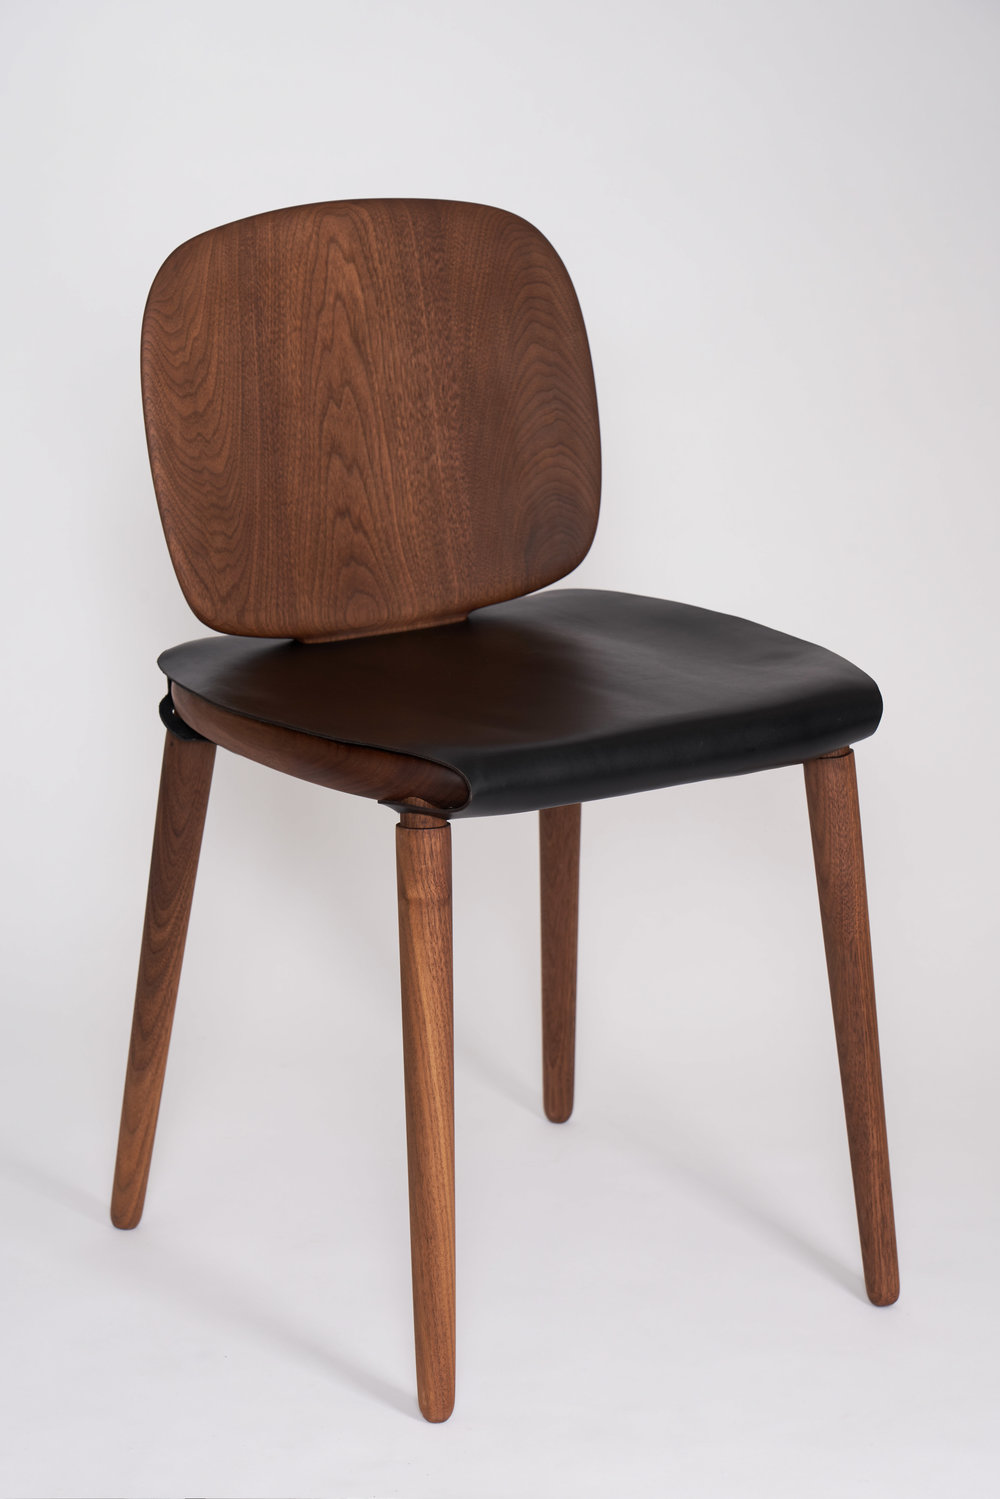 18_08_13 Doris Chair0039.jpg